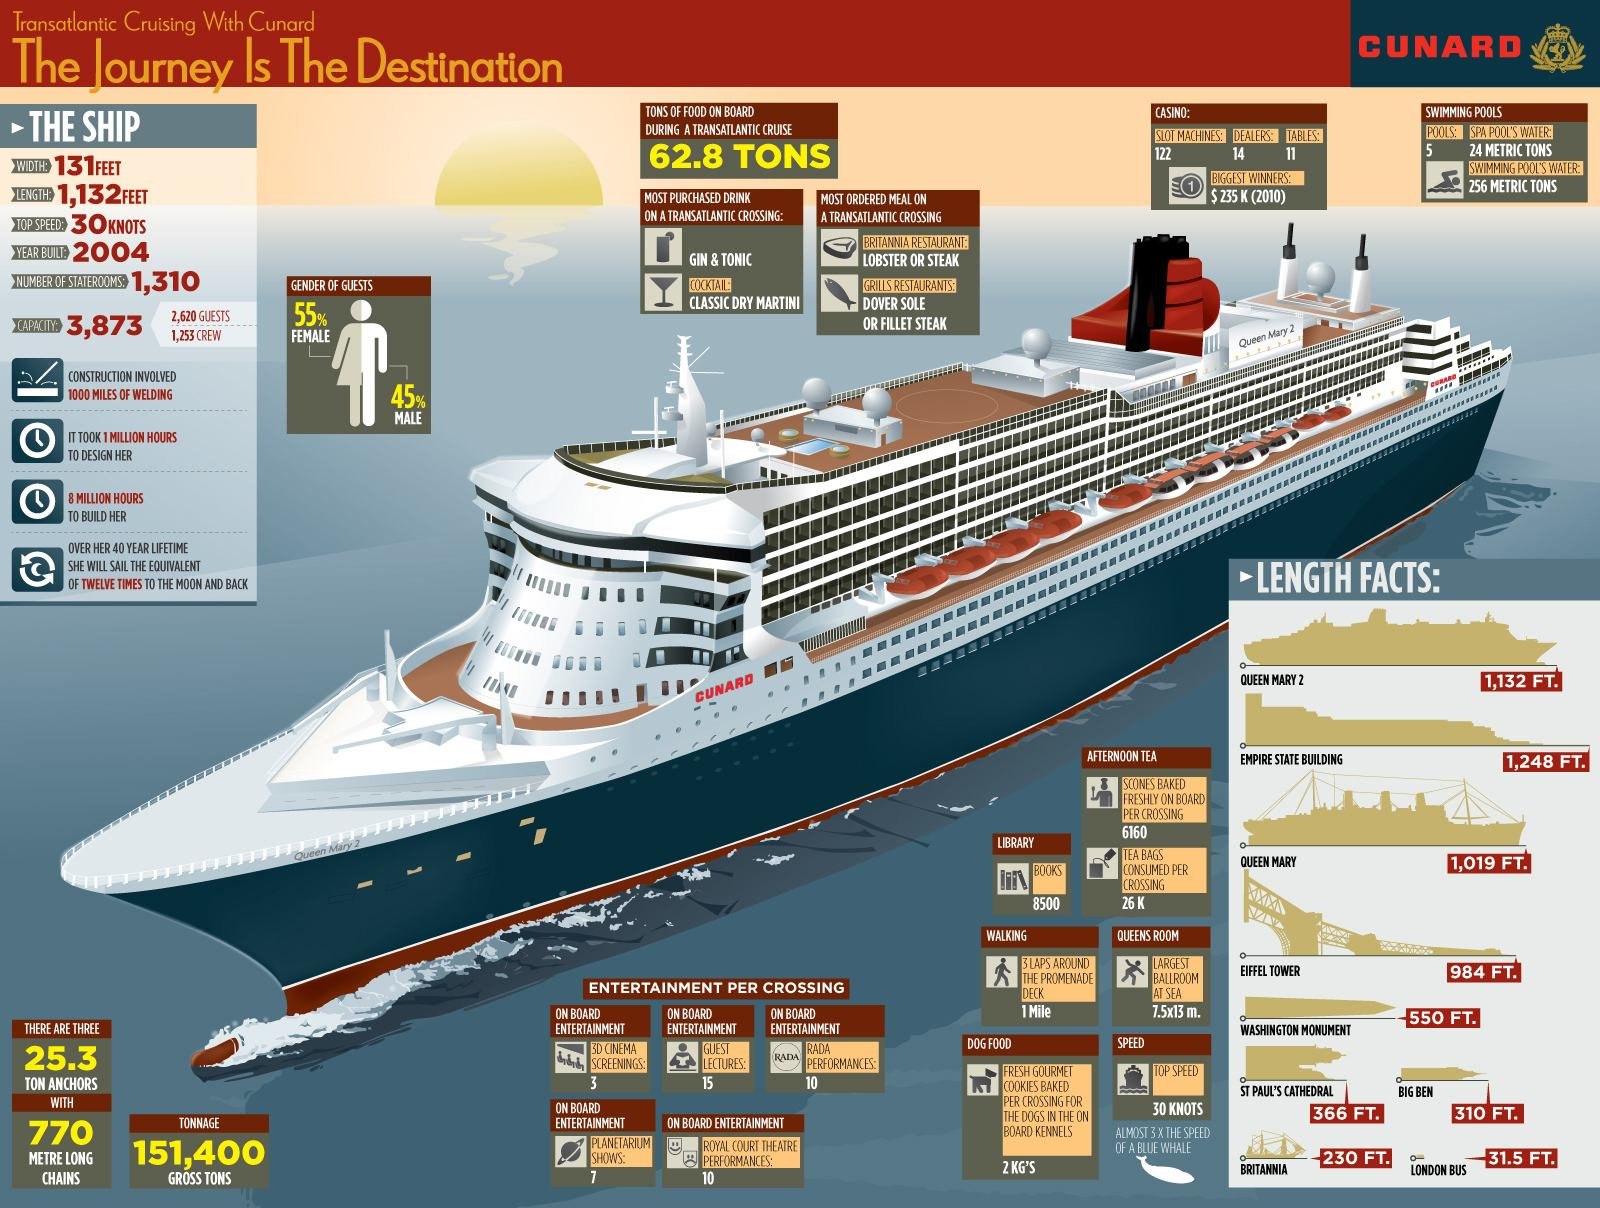 Cunard Queen Mary 2 Comparisons and Interesting